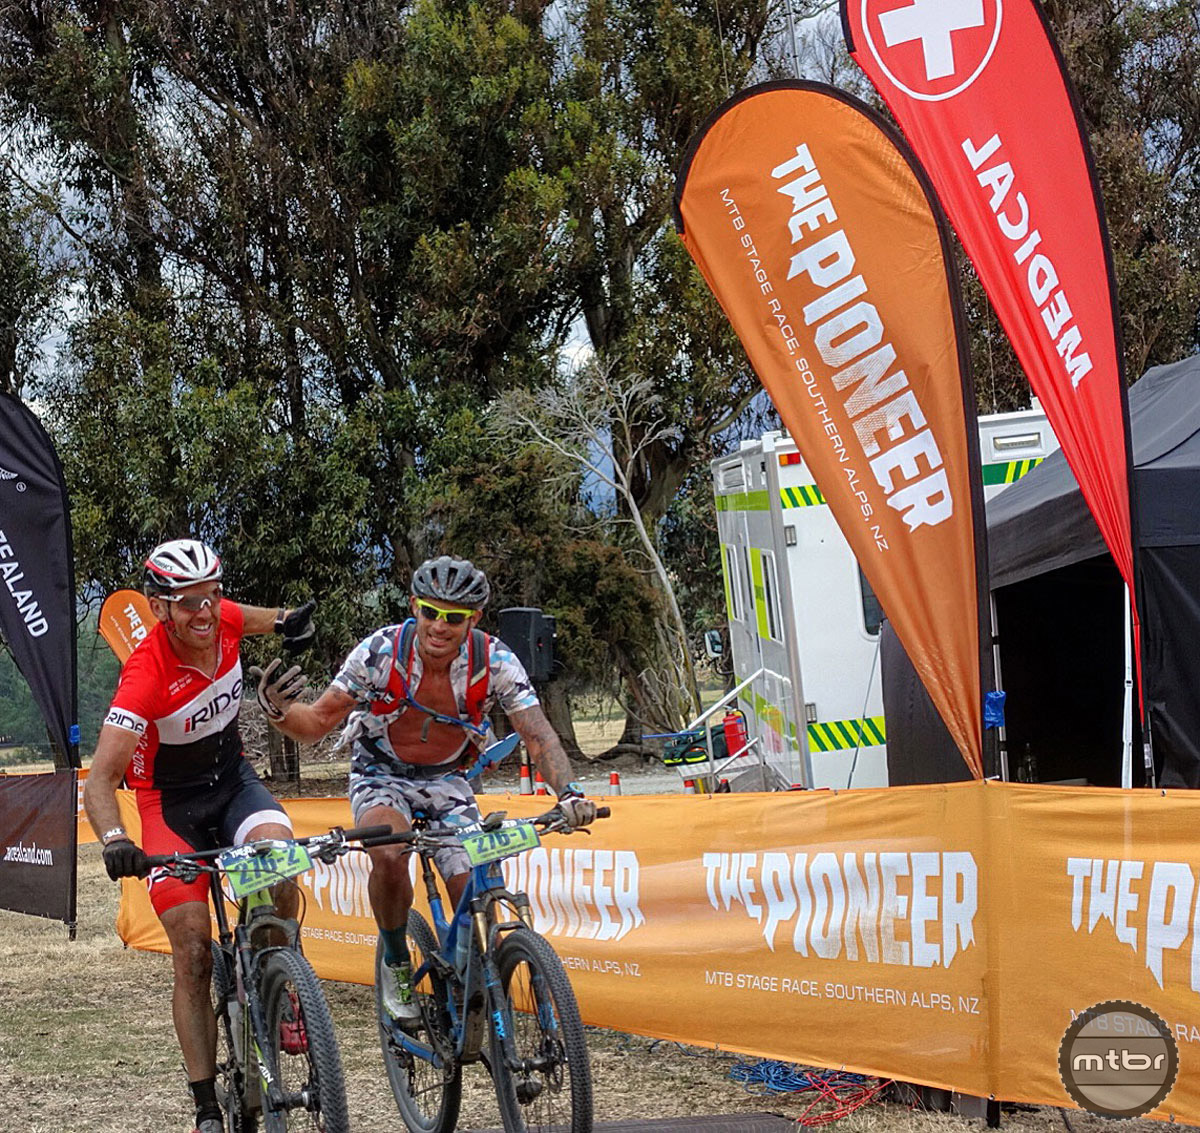 Hauswald and Young finished the Pioneer MTB Stage Race 8th overall and second in the Master's 40+ category. Total saddle time: nearly 31 hours...